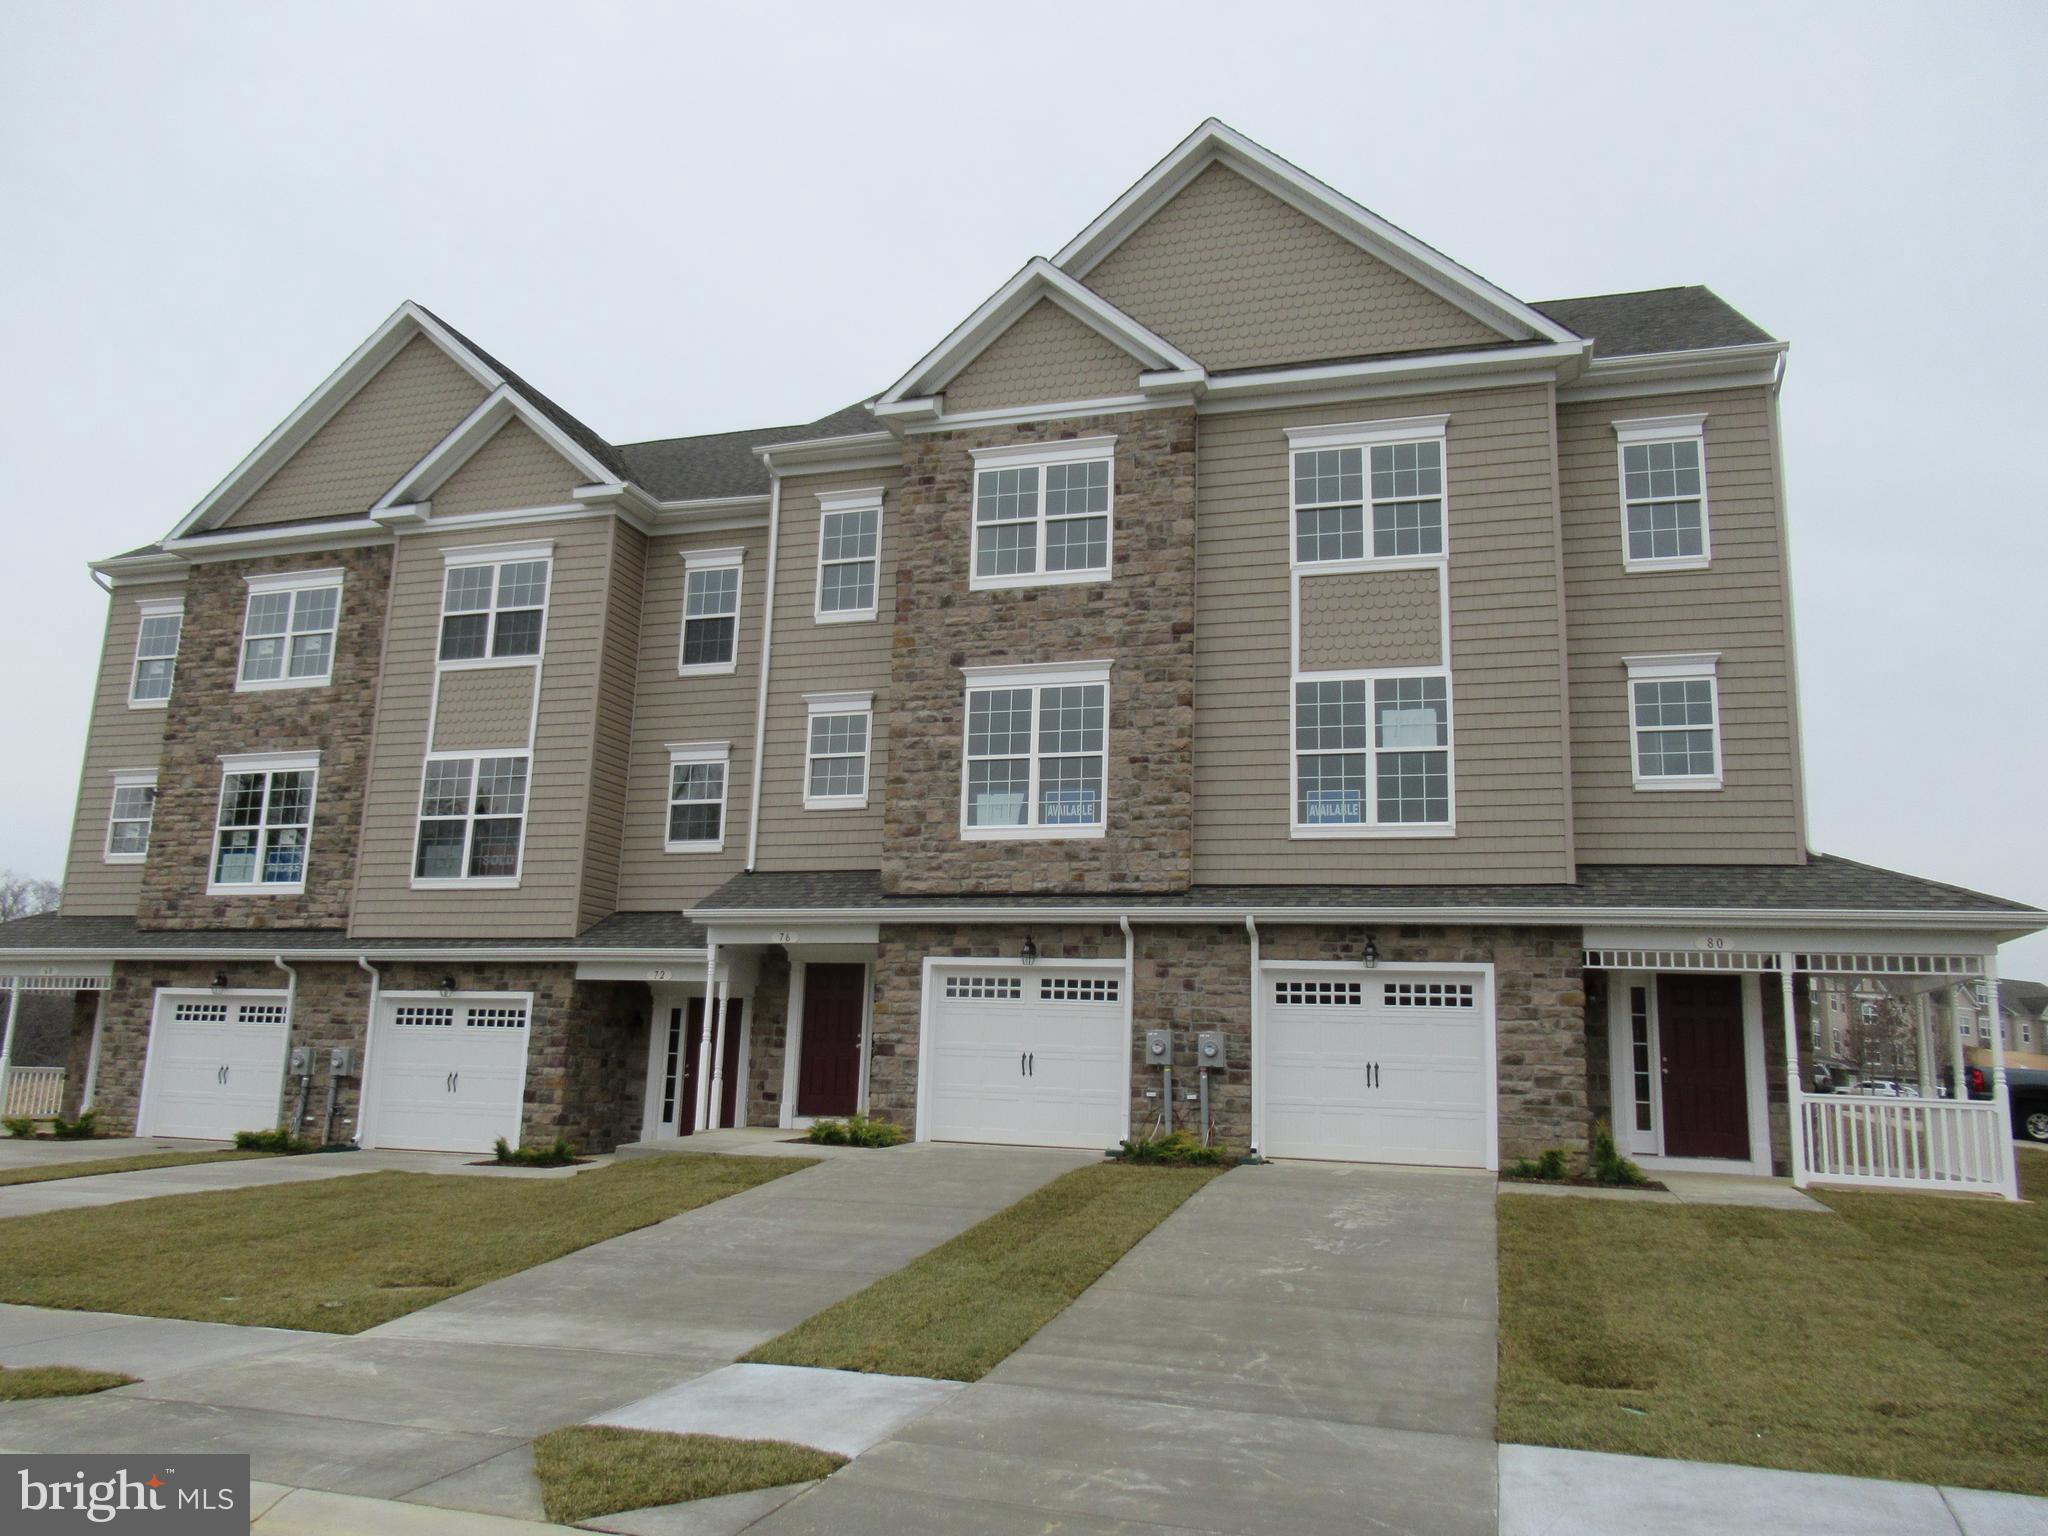 Lot 161   4 Level  Luxury Garage Townhome! This home is over 3200 square ft!  Builder incentives inc